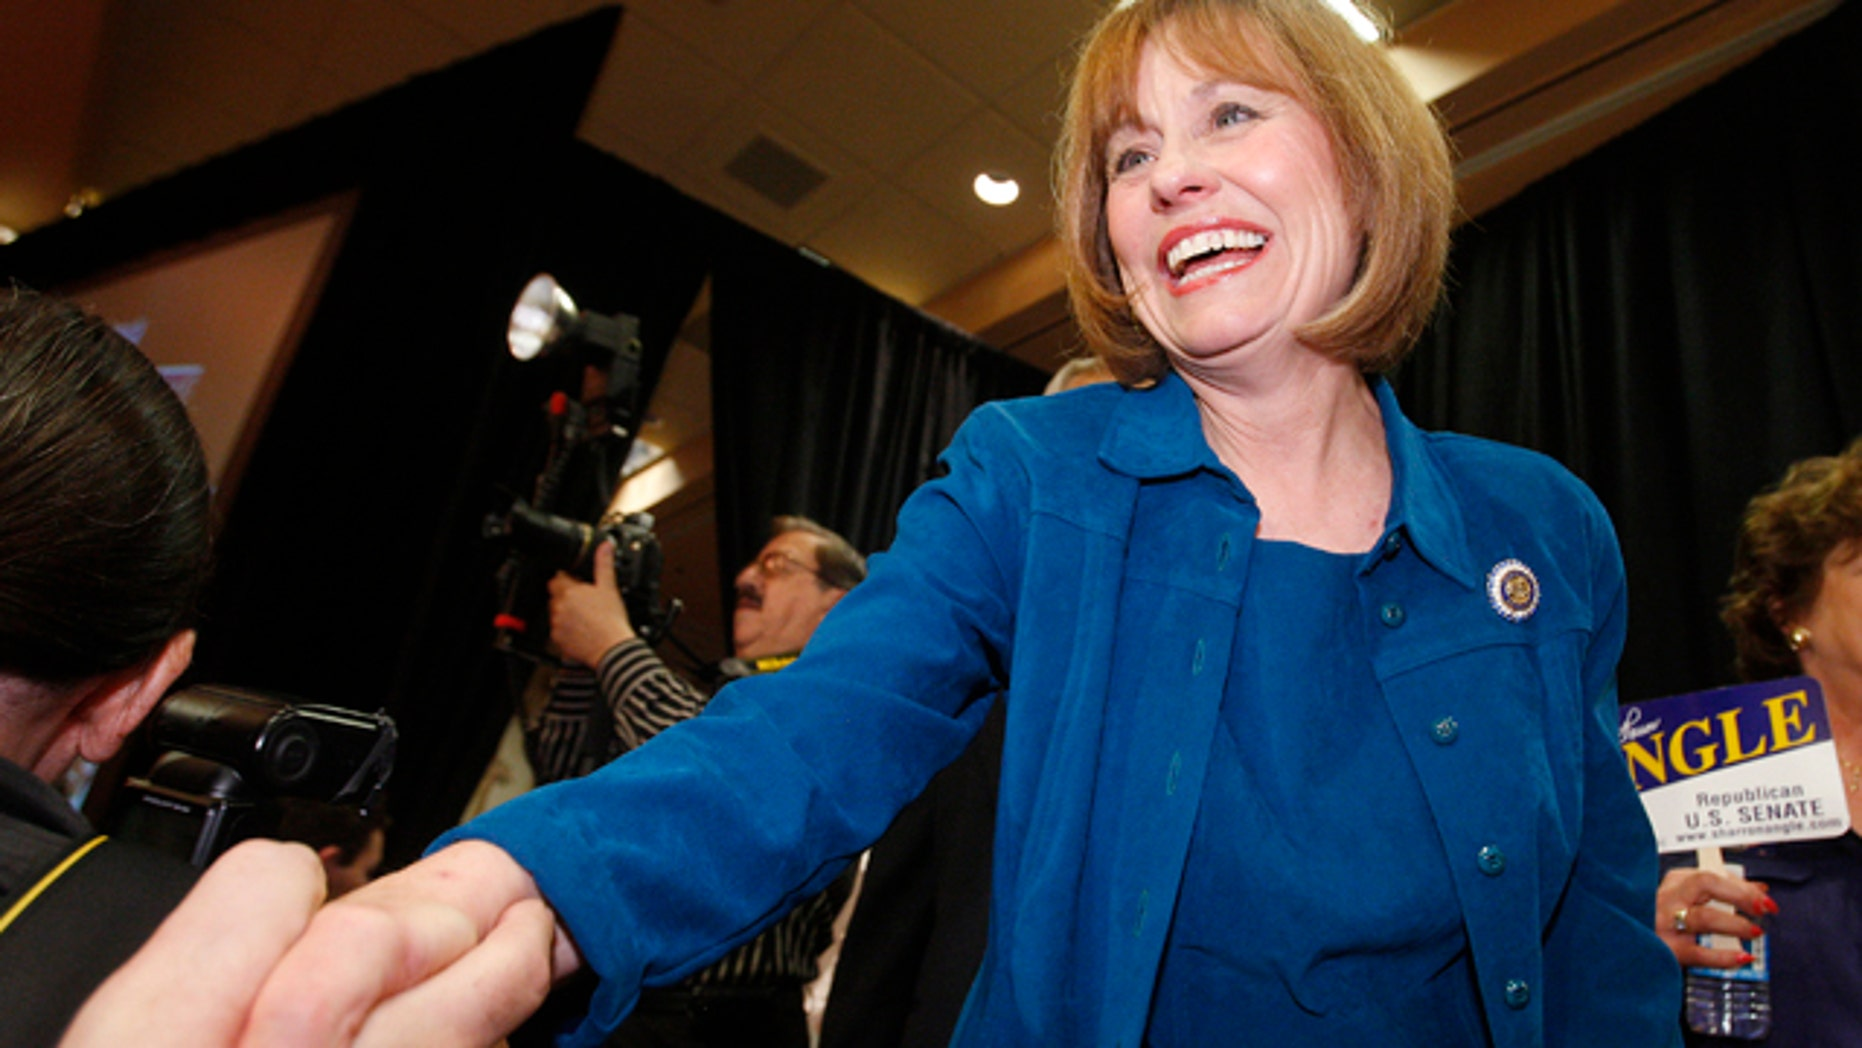 June 8: Nevada Republican Senate candidate Sharron Angle shakes hands of supporters in Las Vegas.